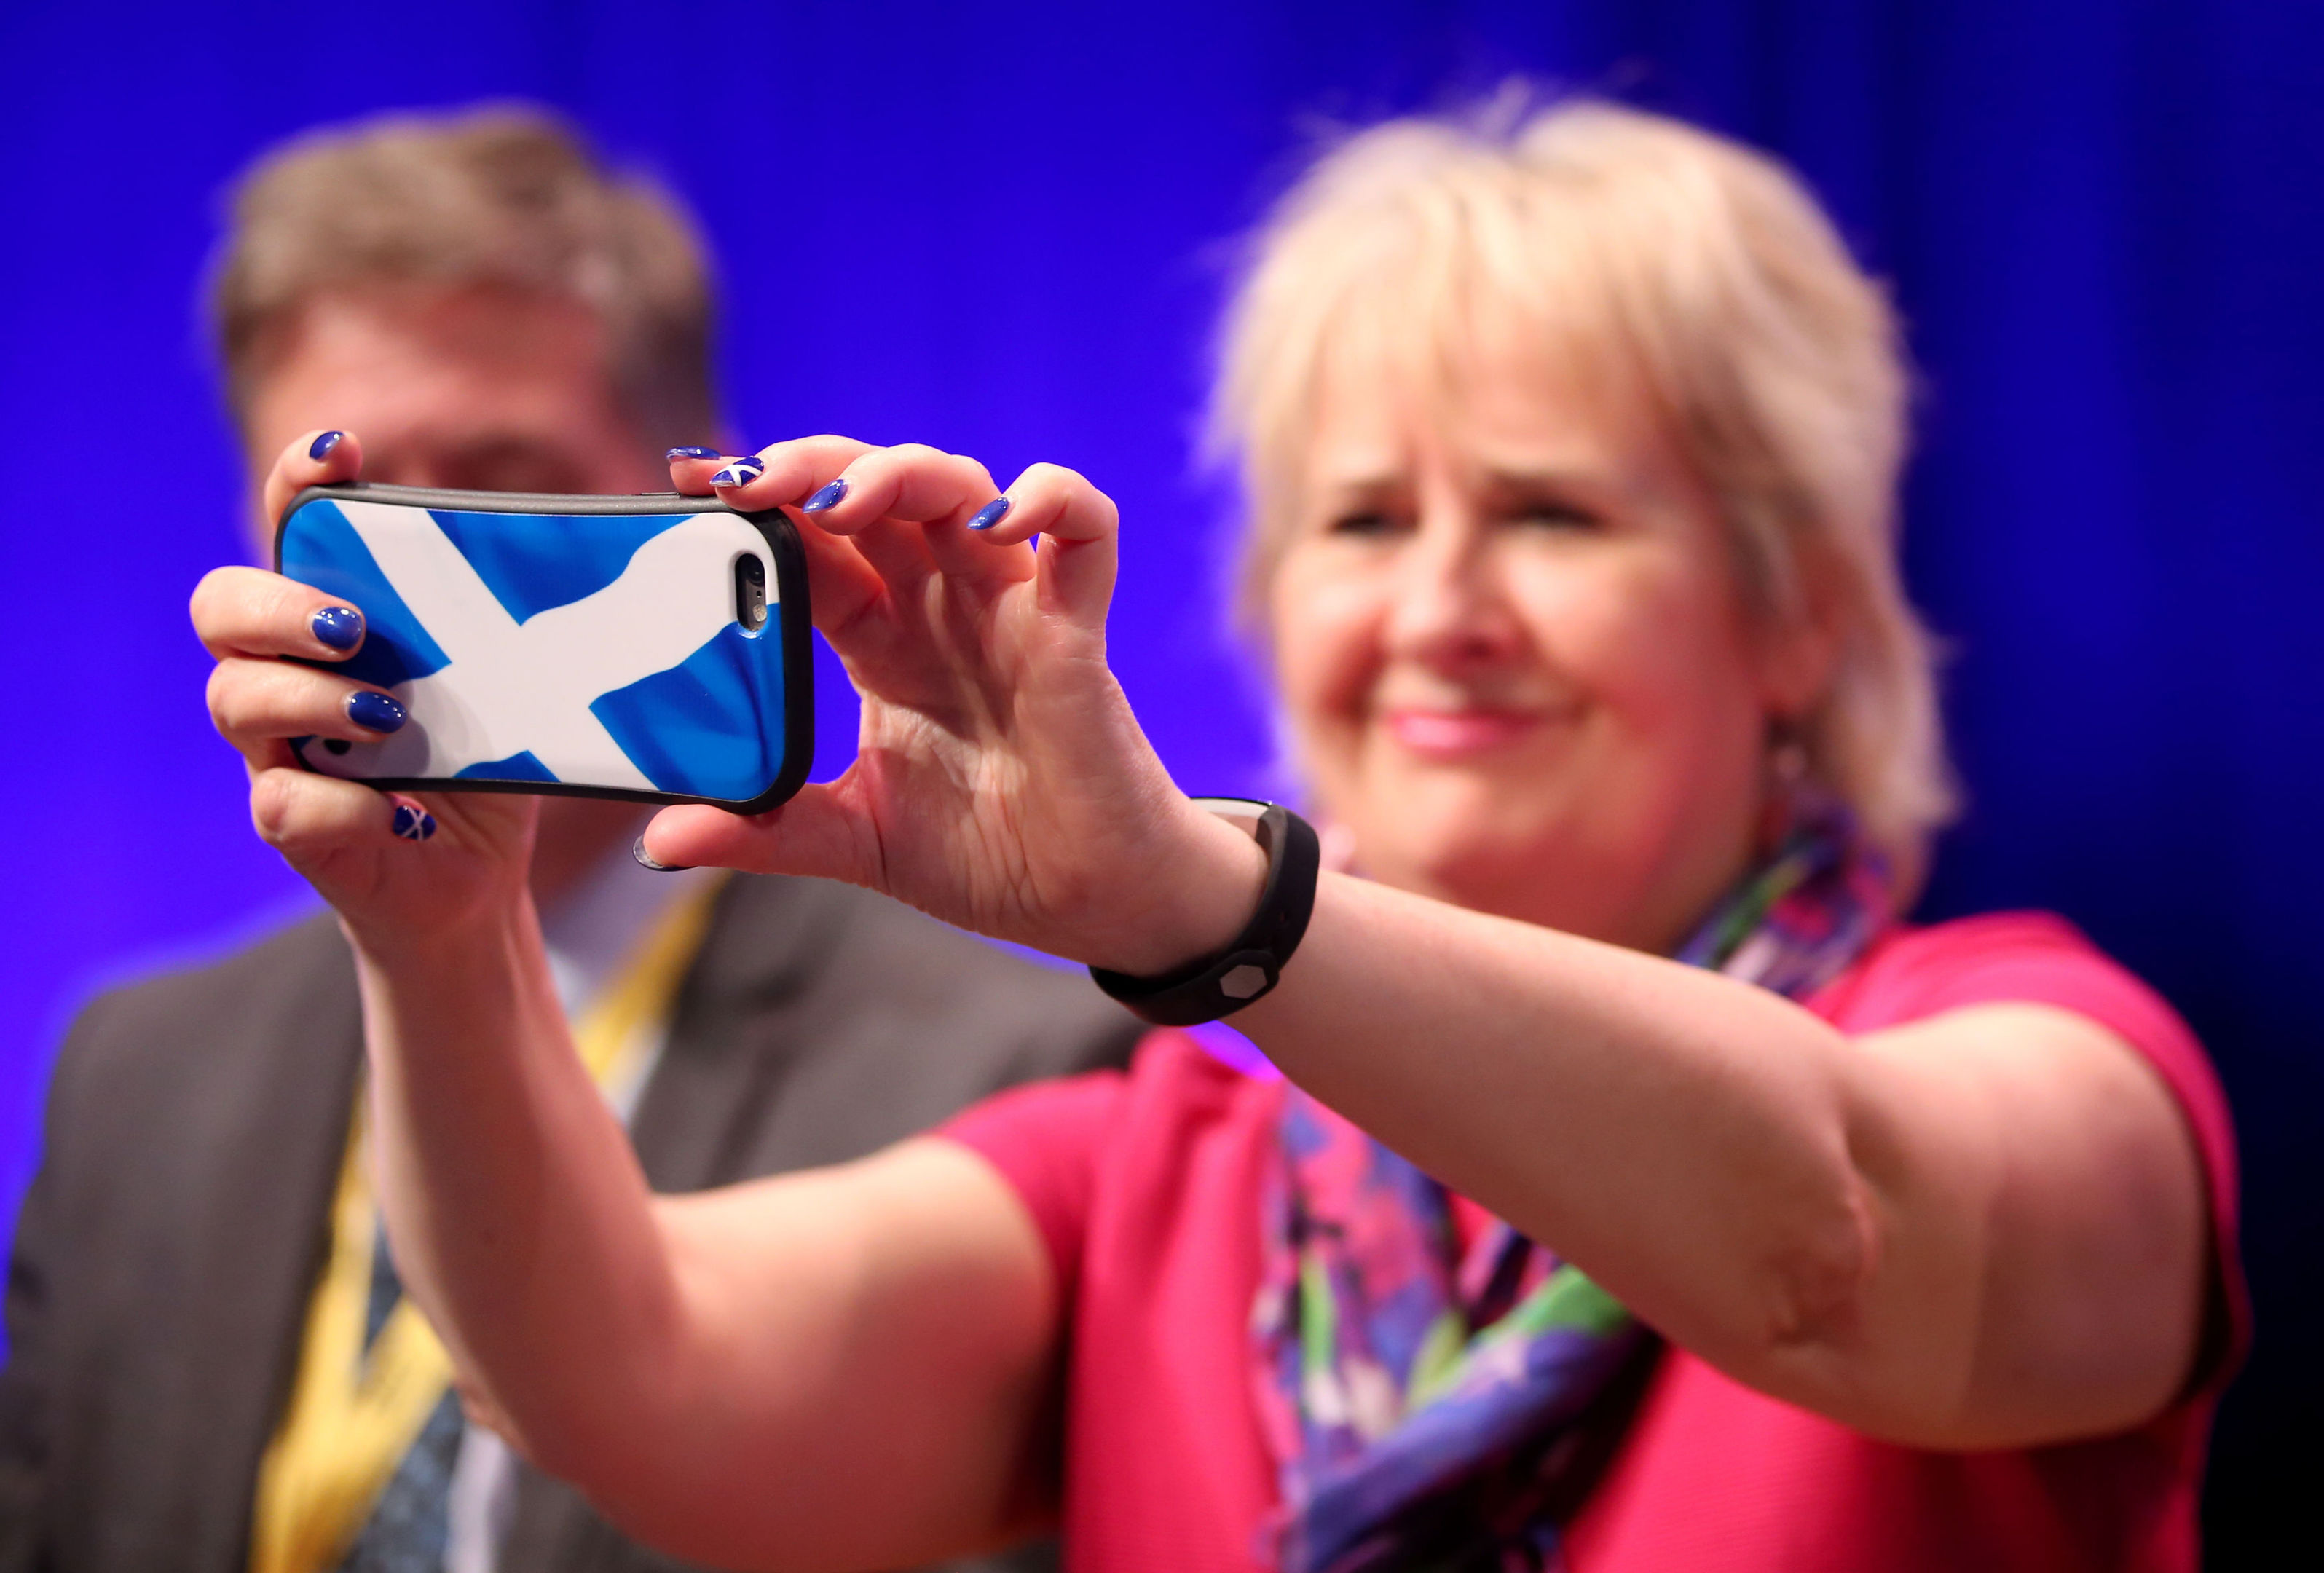 Roseanna Cunningham takes pictures on her phone as First Minister Nicola Sturgeon delivers her keynote speech at the Scottish National Party conference at the SEC Centre in Glasgow.